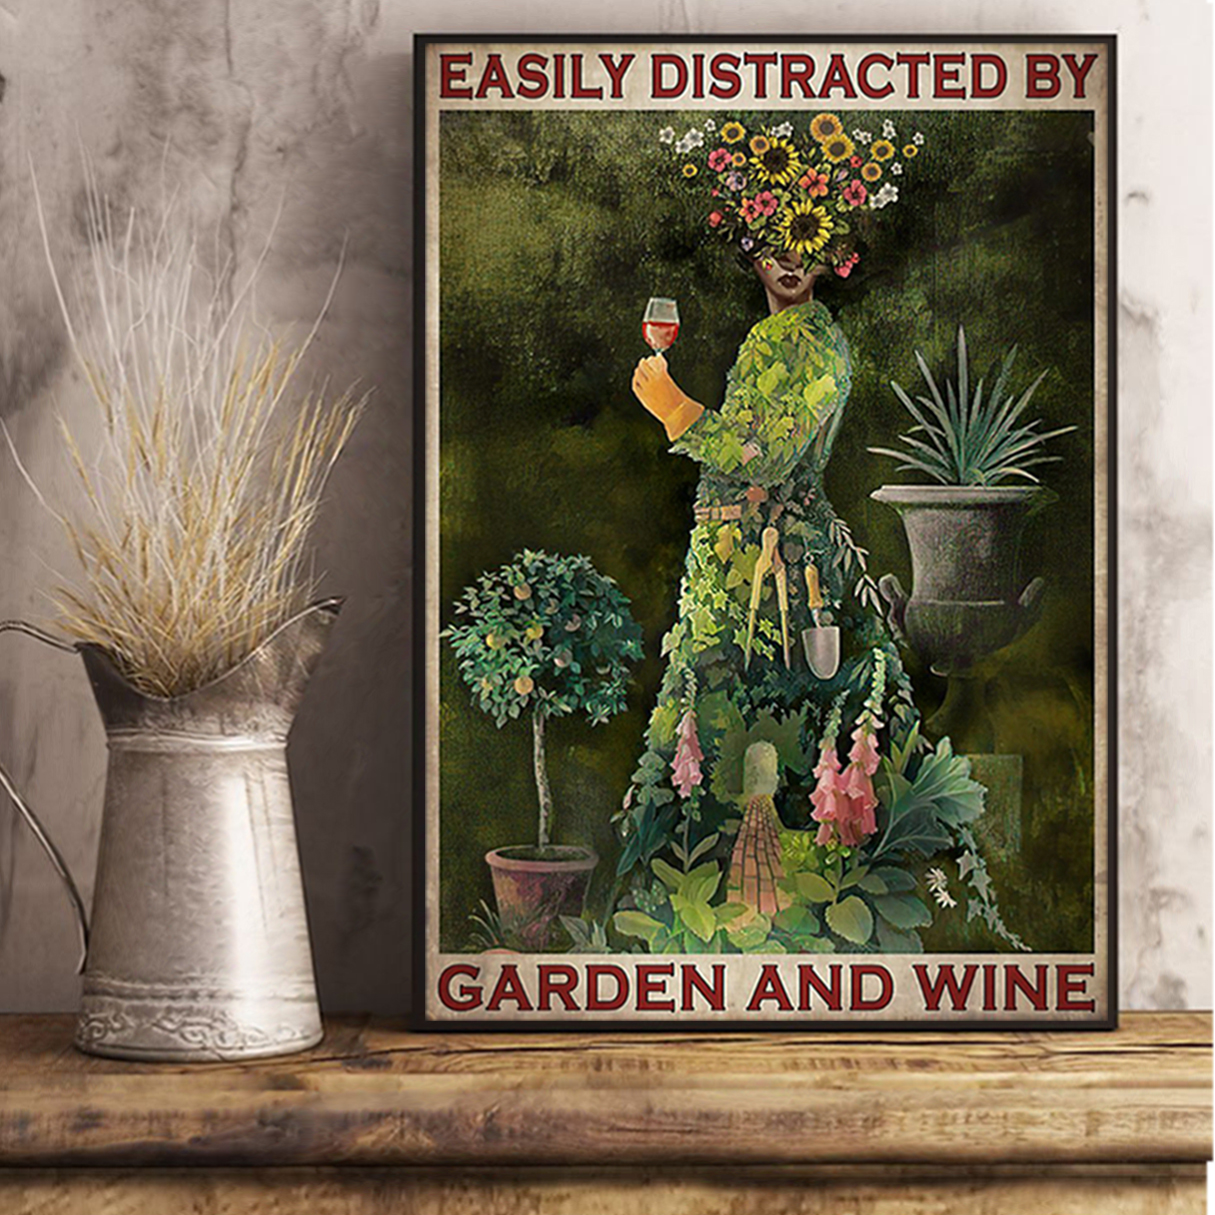 Easily distracted by garden and wine poster A1